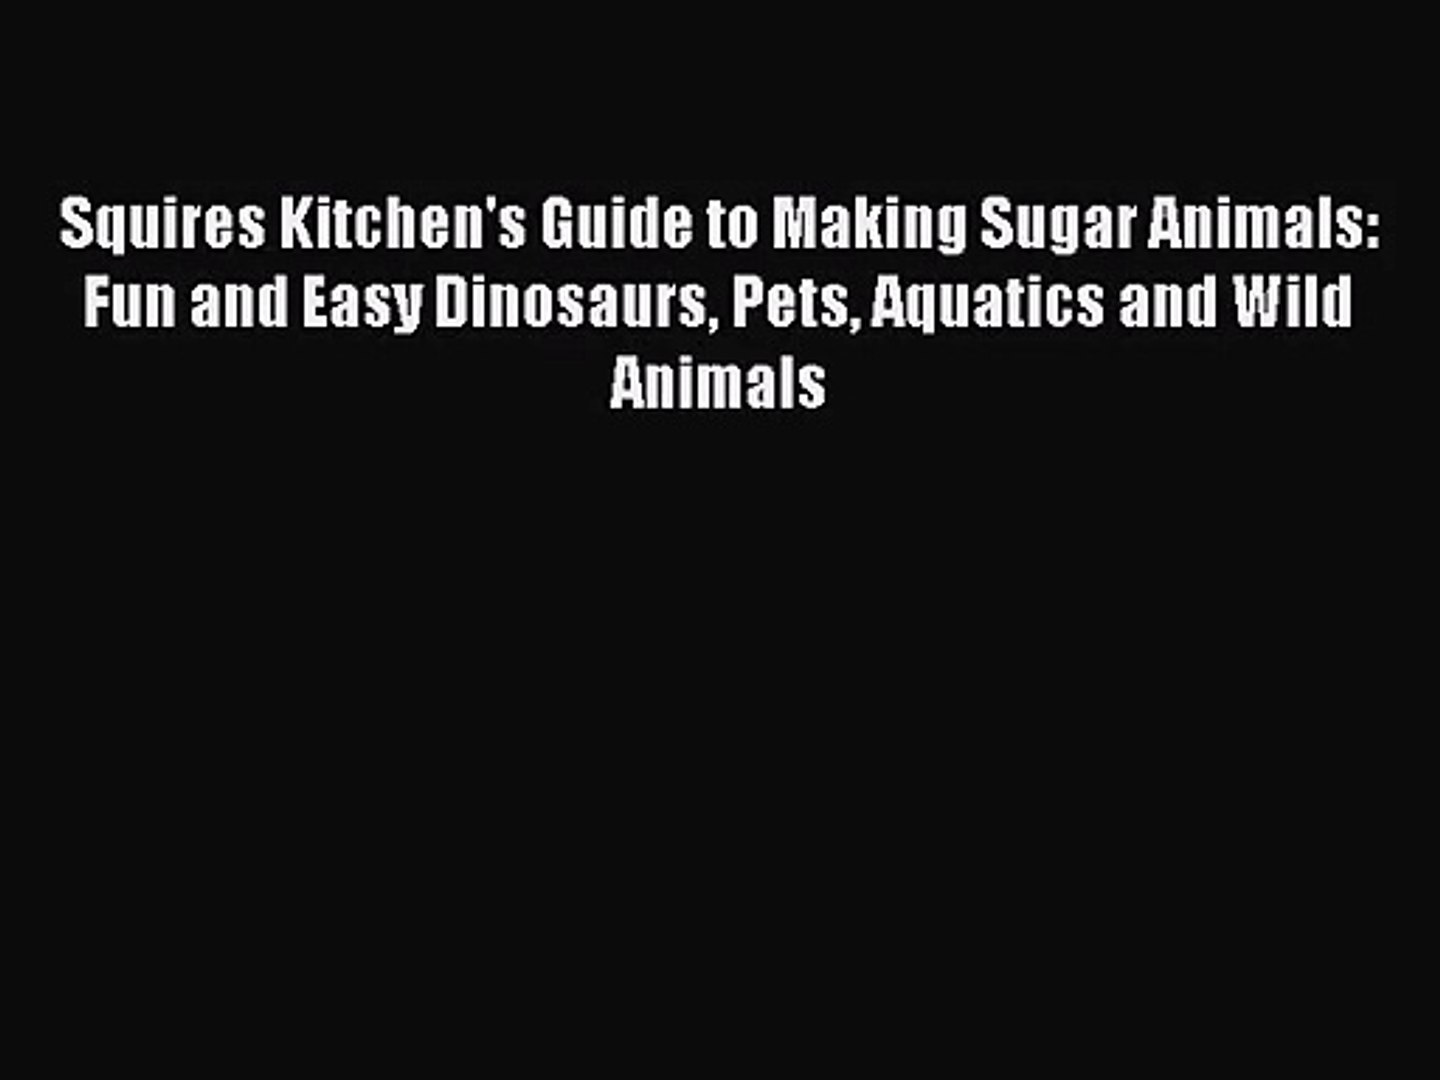 Read Squires Kitchen's Guide to Making Sugar Animals: Fun and Easy Dinosaurs Pets Aquatics